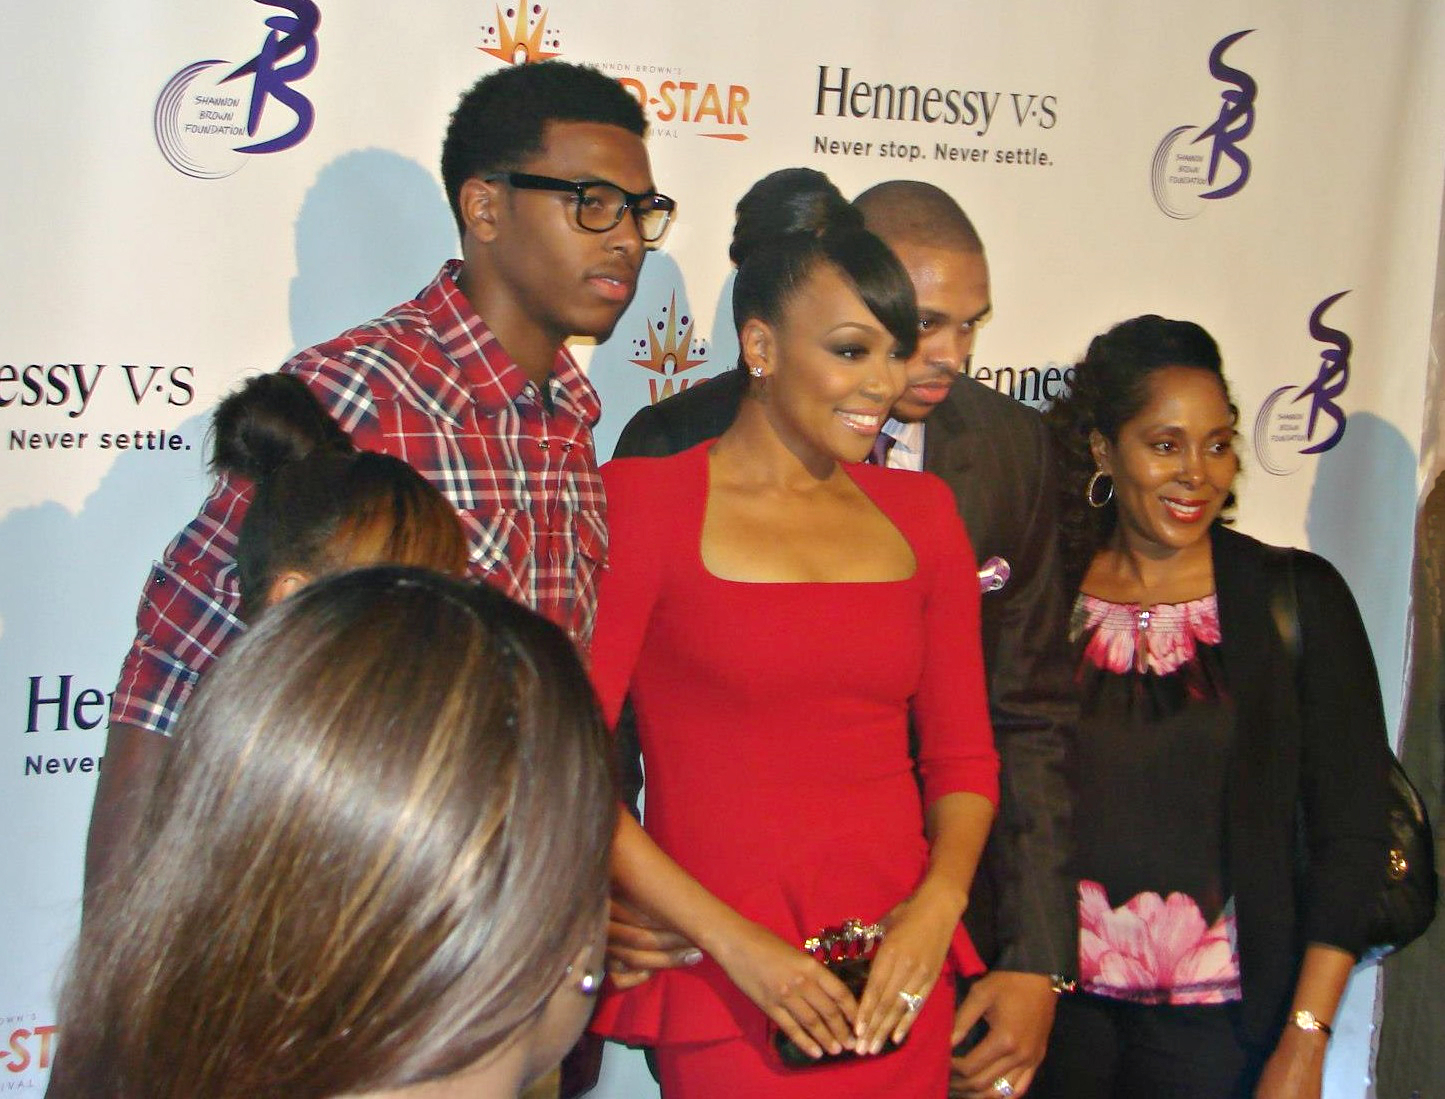 On the red carpet with family